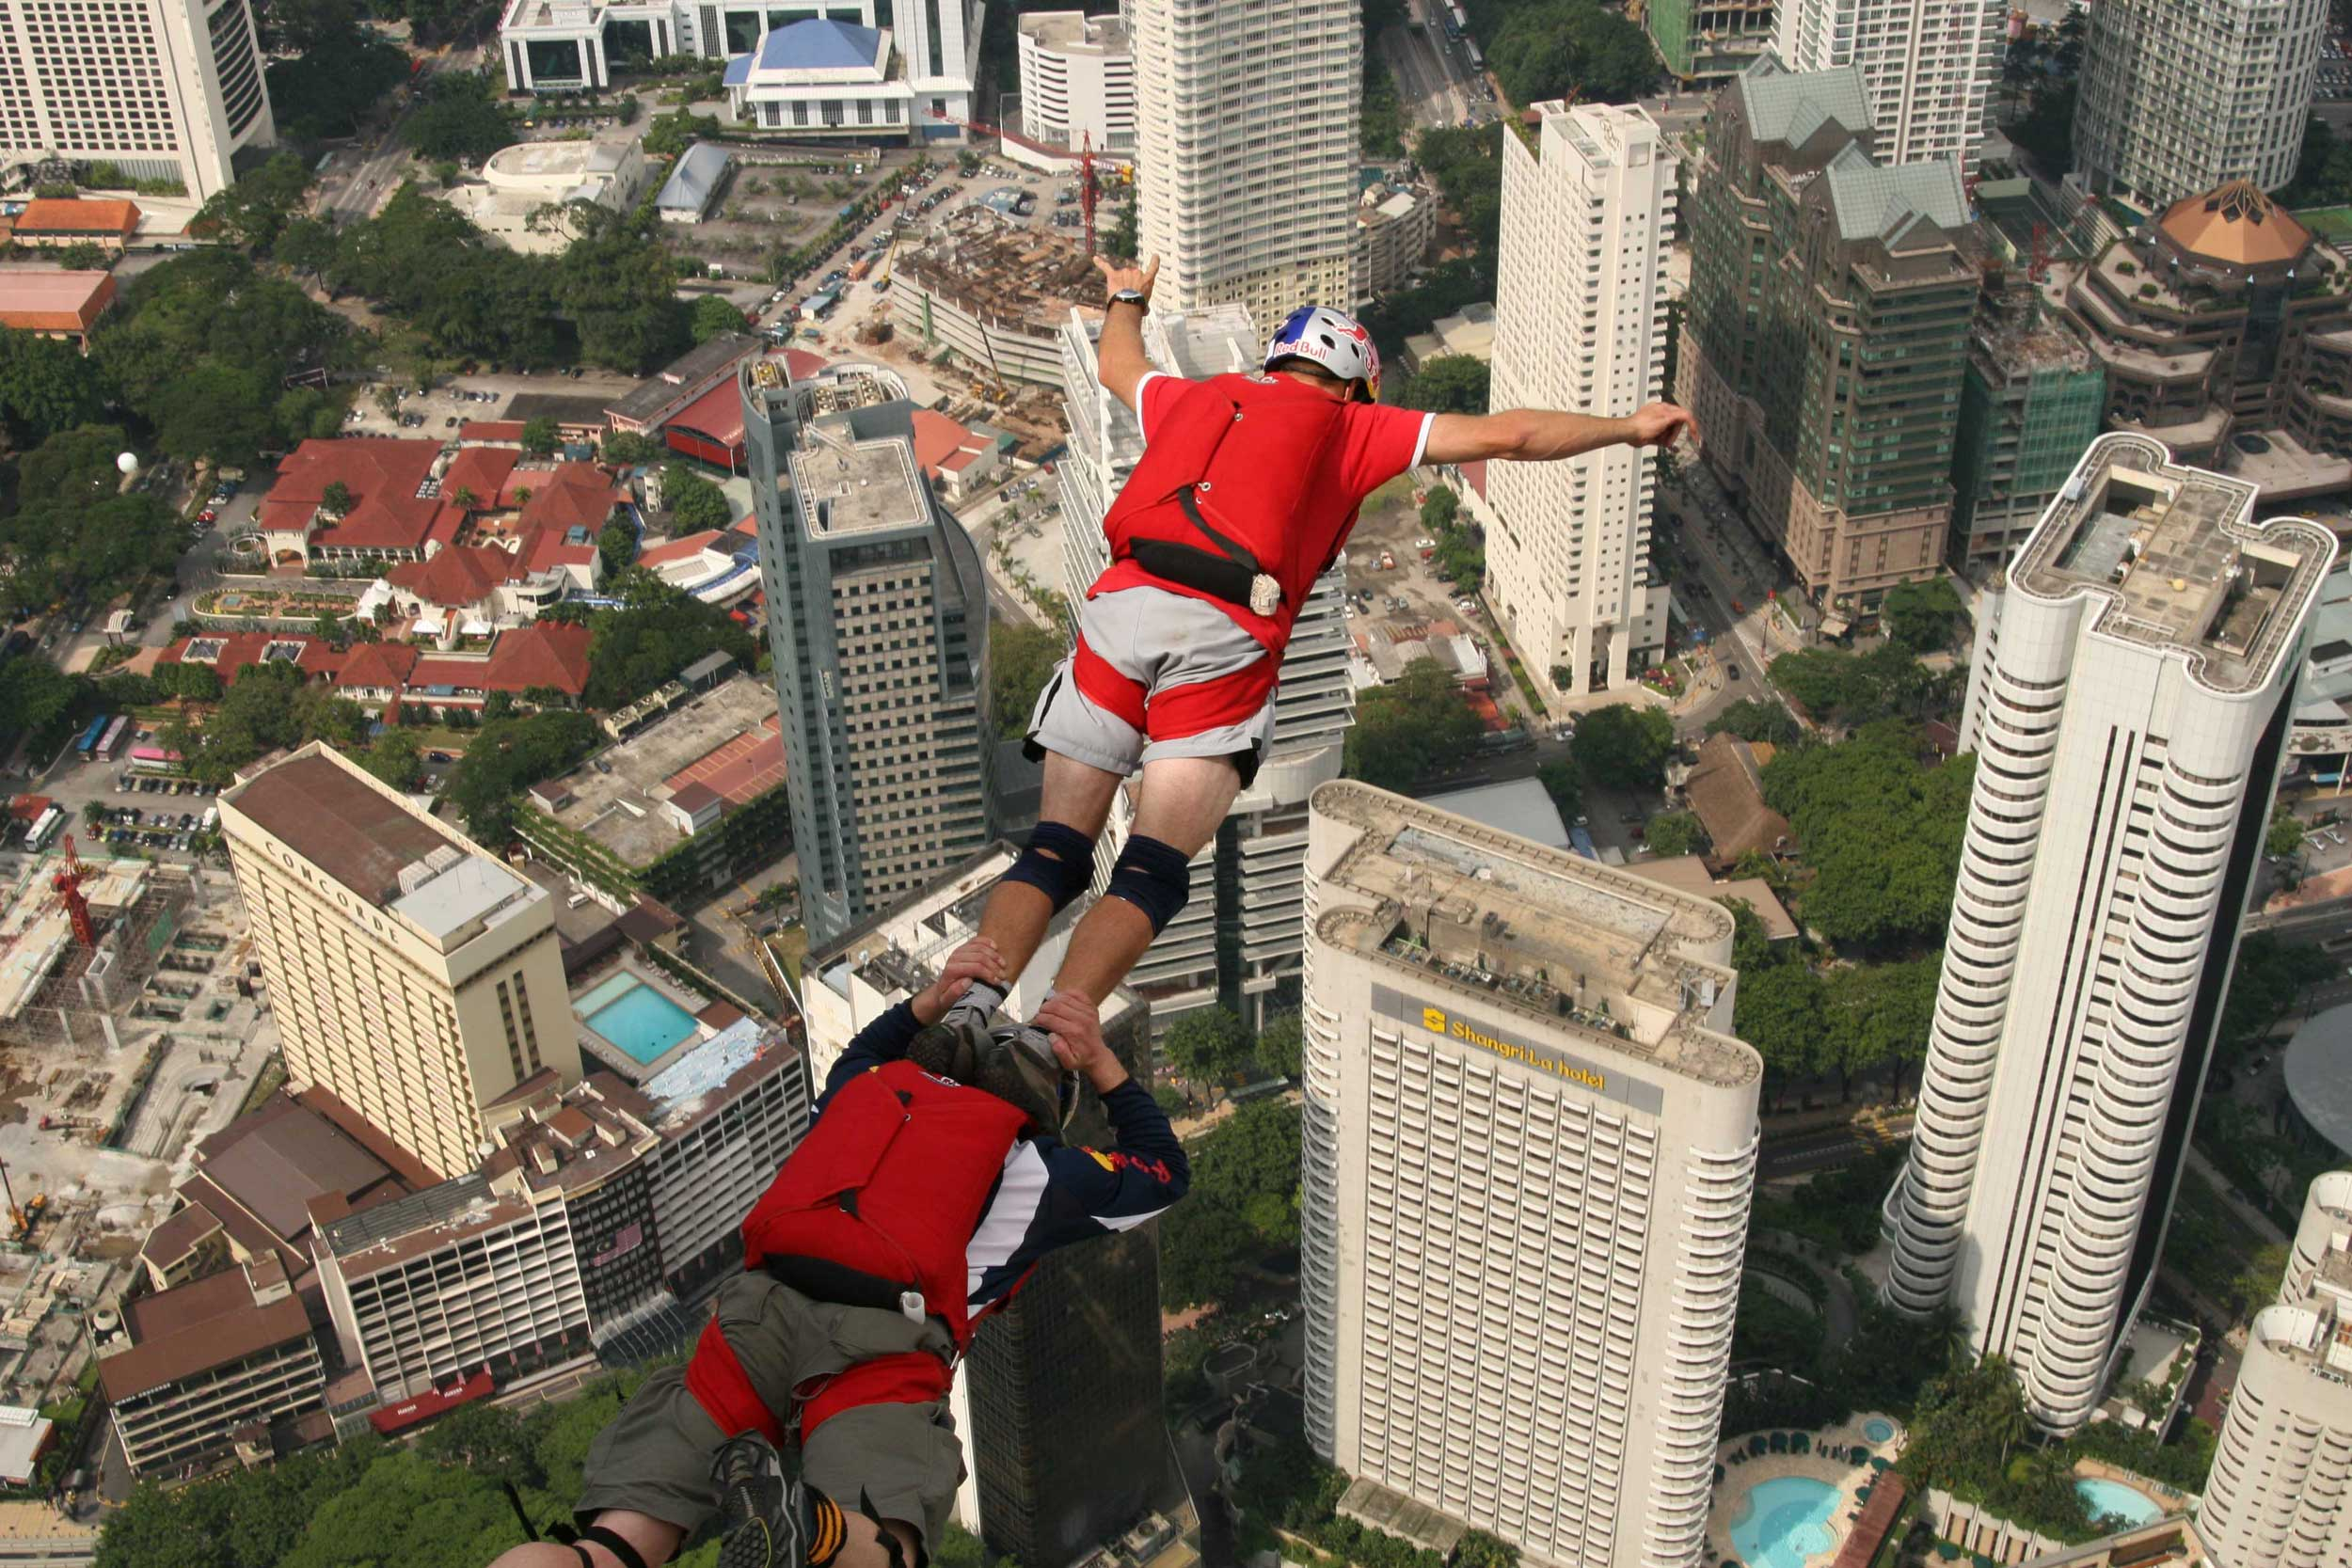 Man standing on anothers' shoulders and both jumping off a building down towards buildings below them in Kuala Lumpur